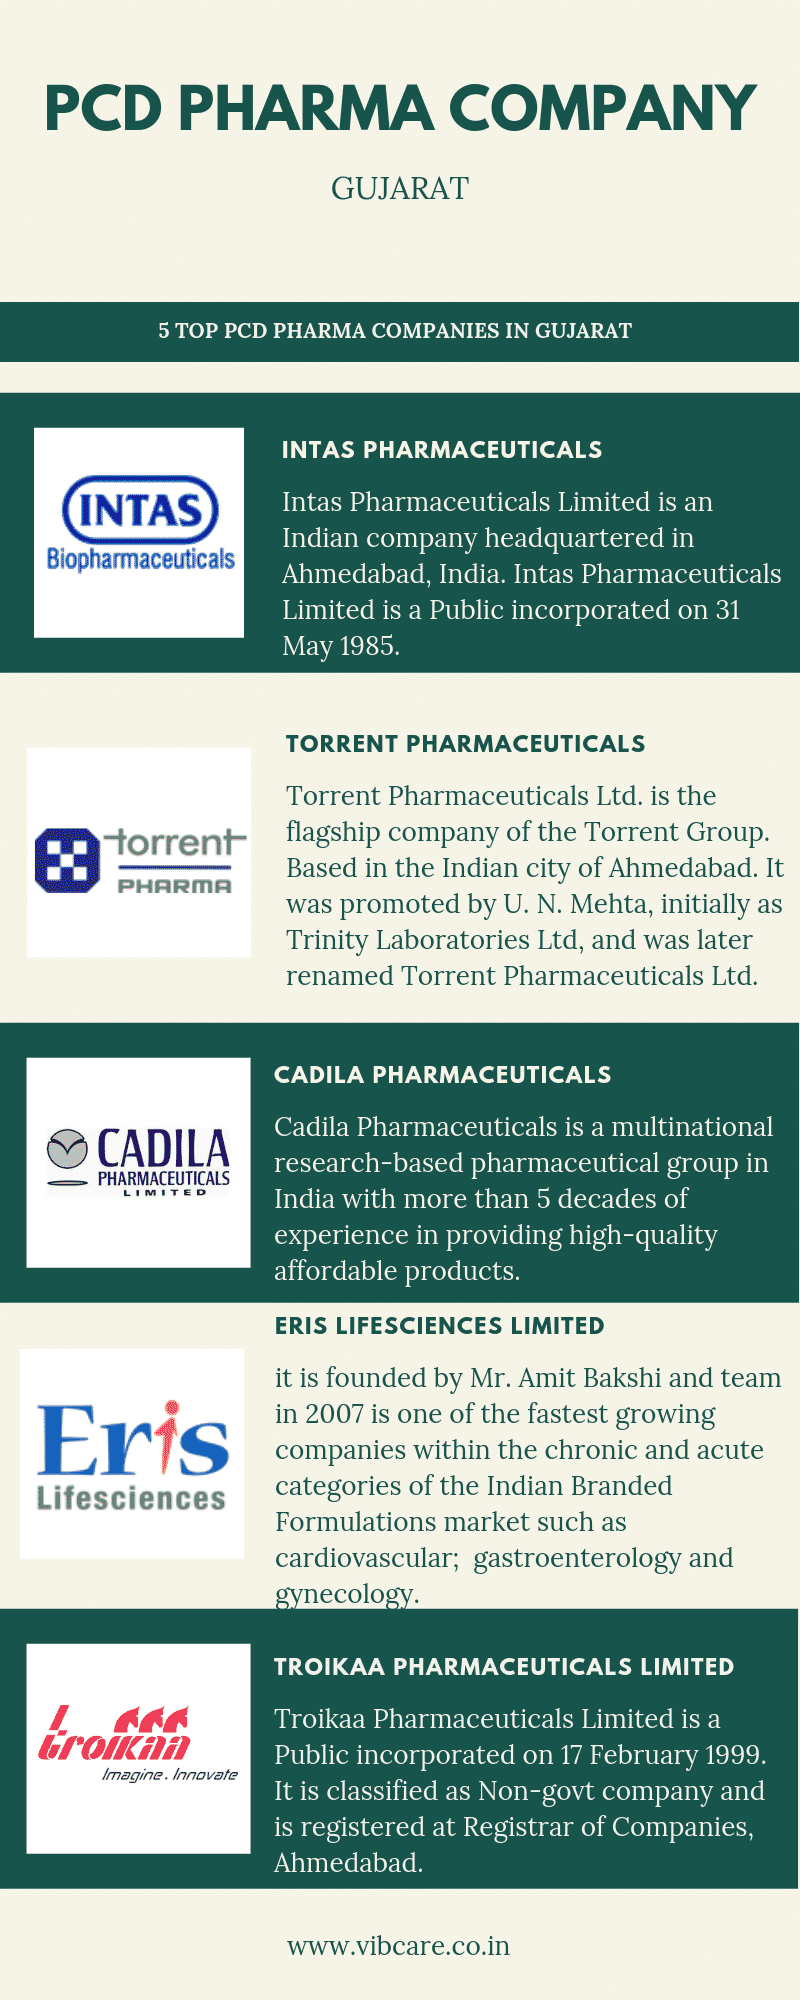 PCD Pharma company in gujarat